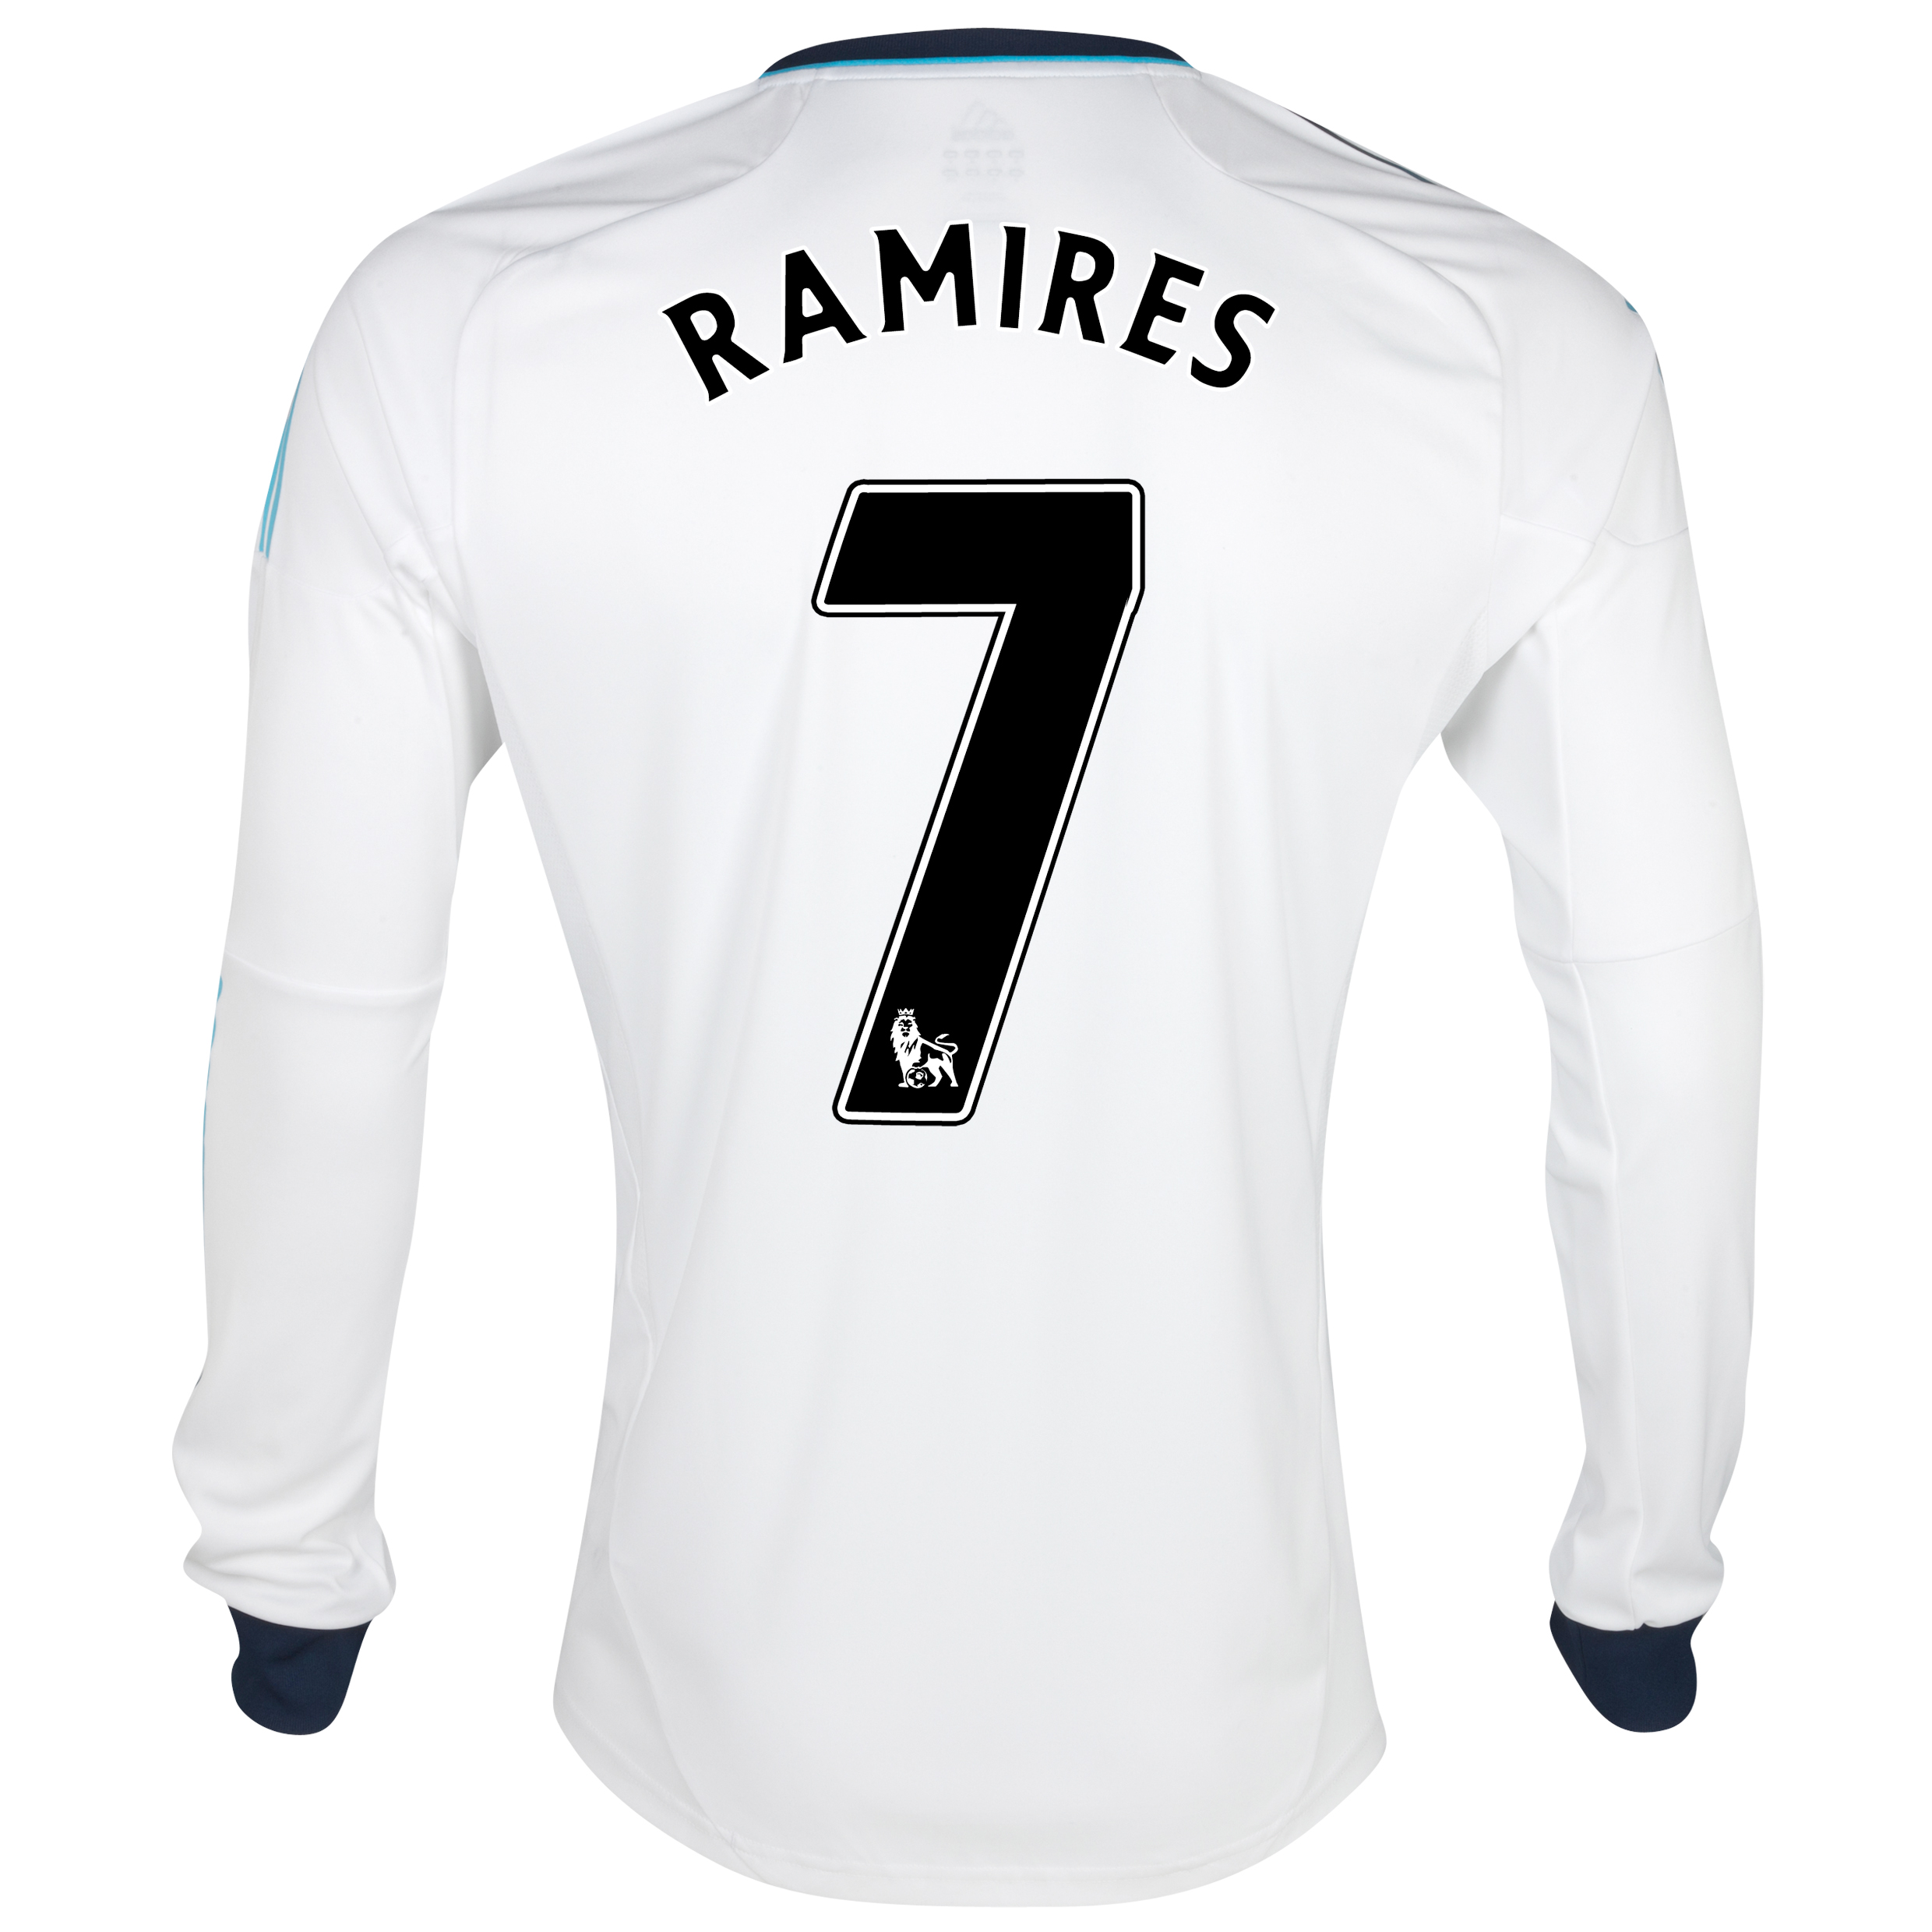 Chelsea Away Shirt 2012/13 - Long Sleeved  - Youths with Ramires 7 printing